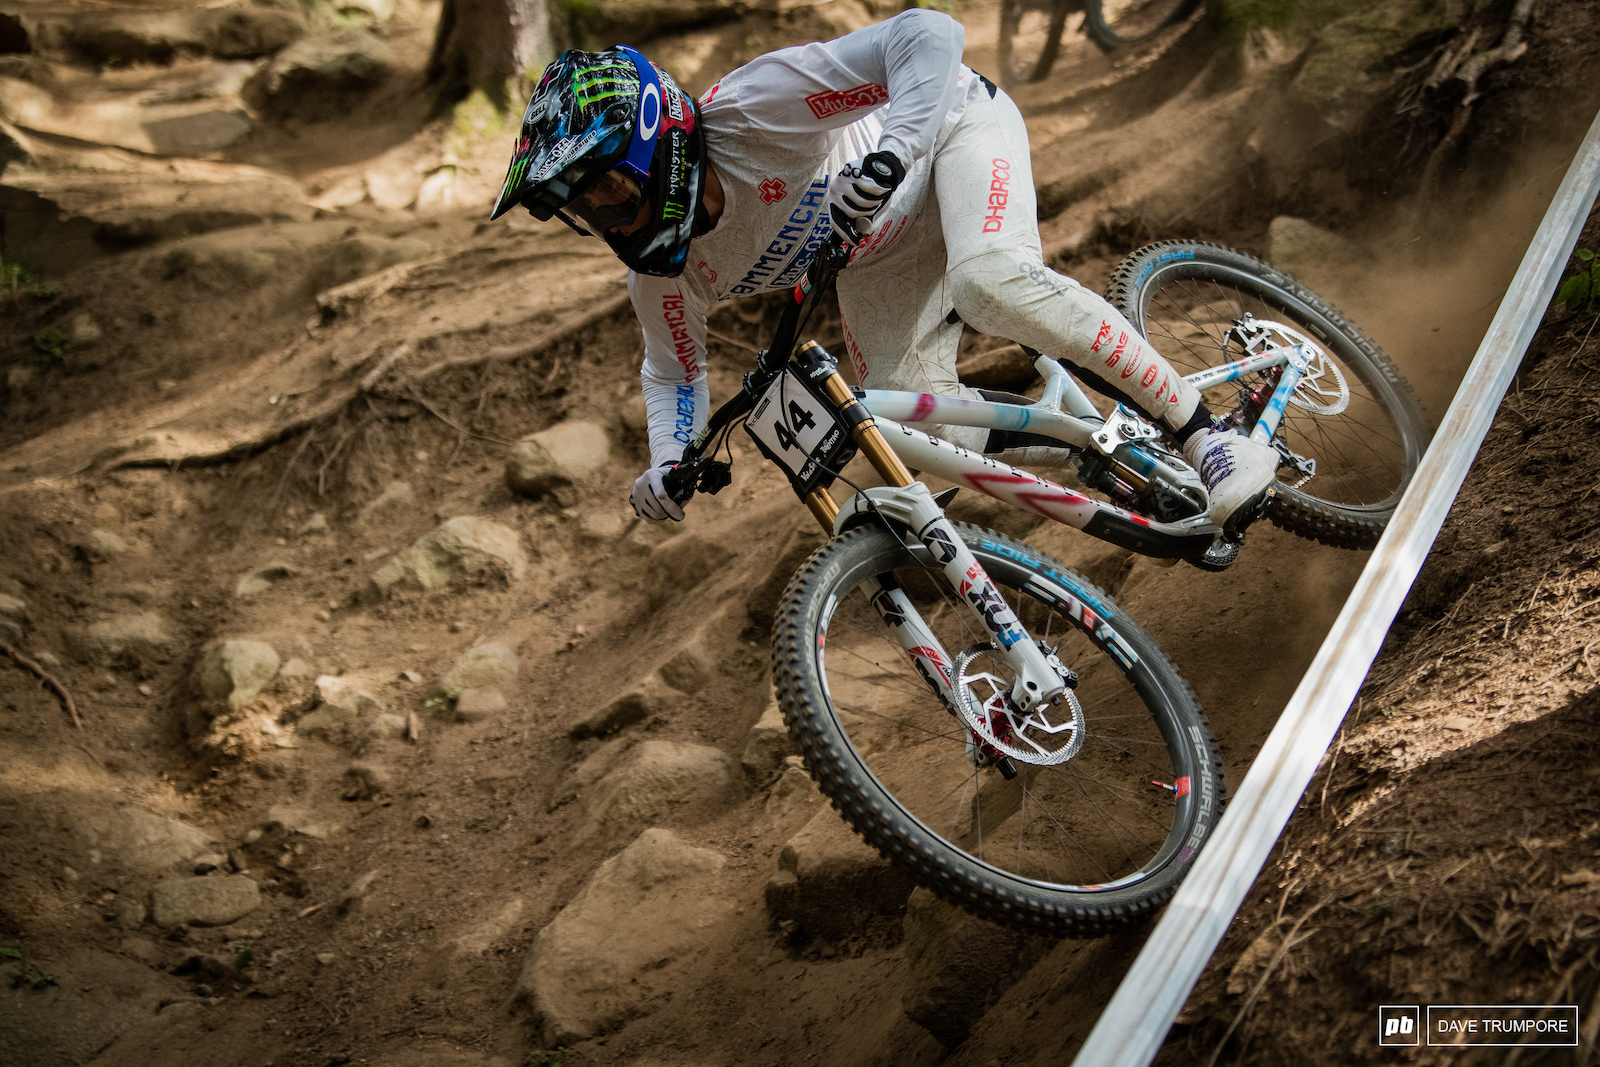 Amaury Pierron loves this track and knows what needs to be done to win in Val di Sole